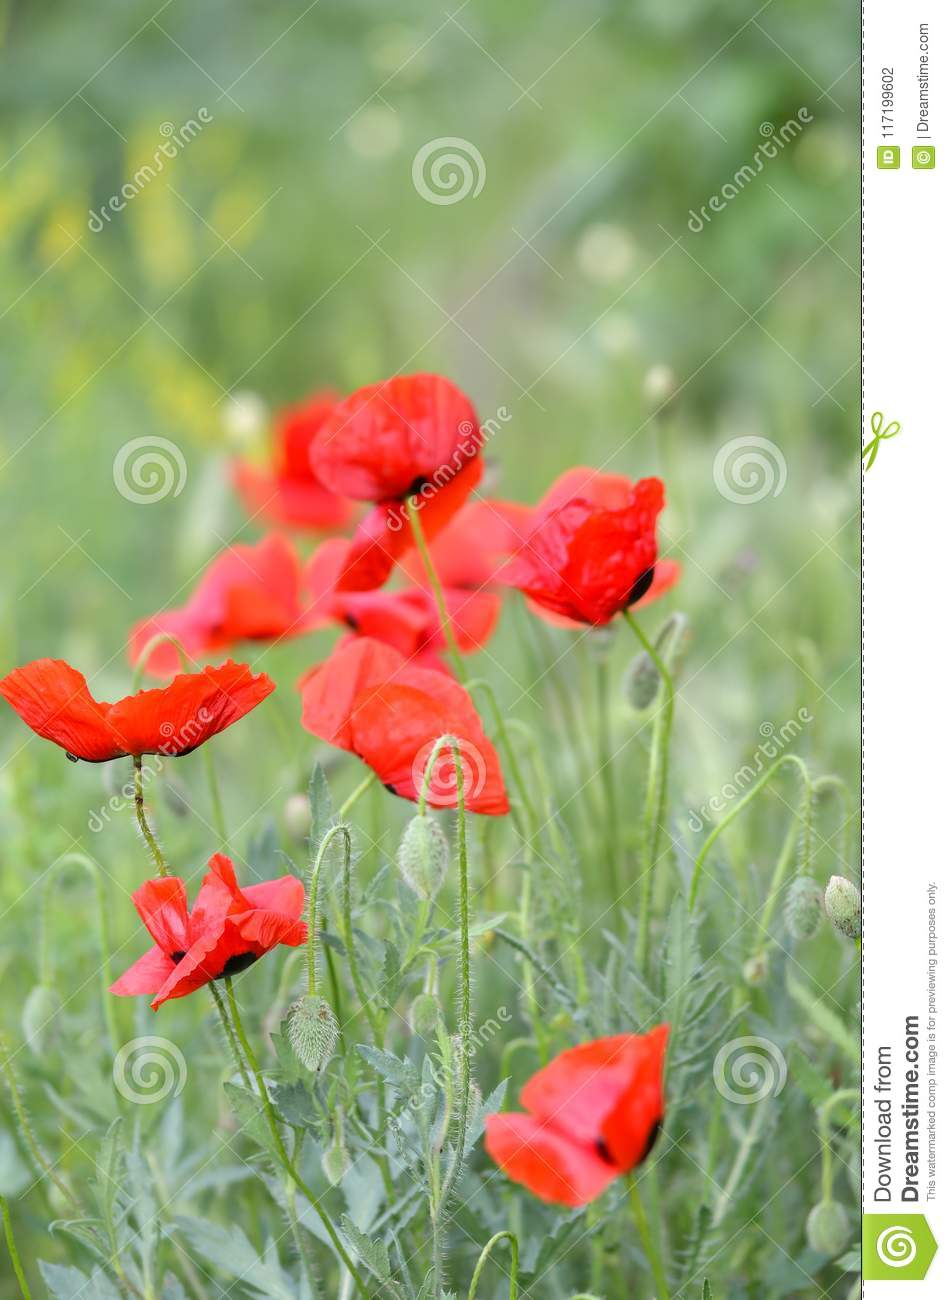 Field Of Poppy Flowers On A Windy Day Stock Photo Image Of Colors